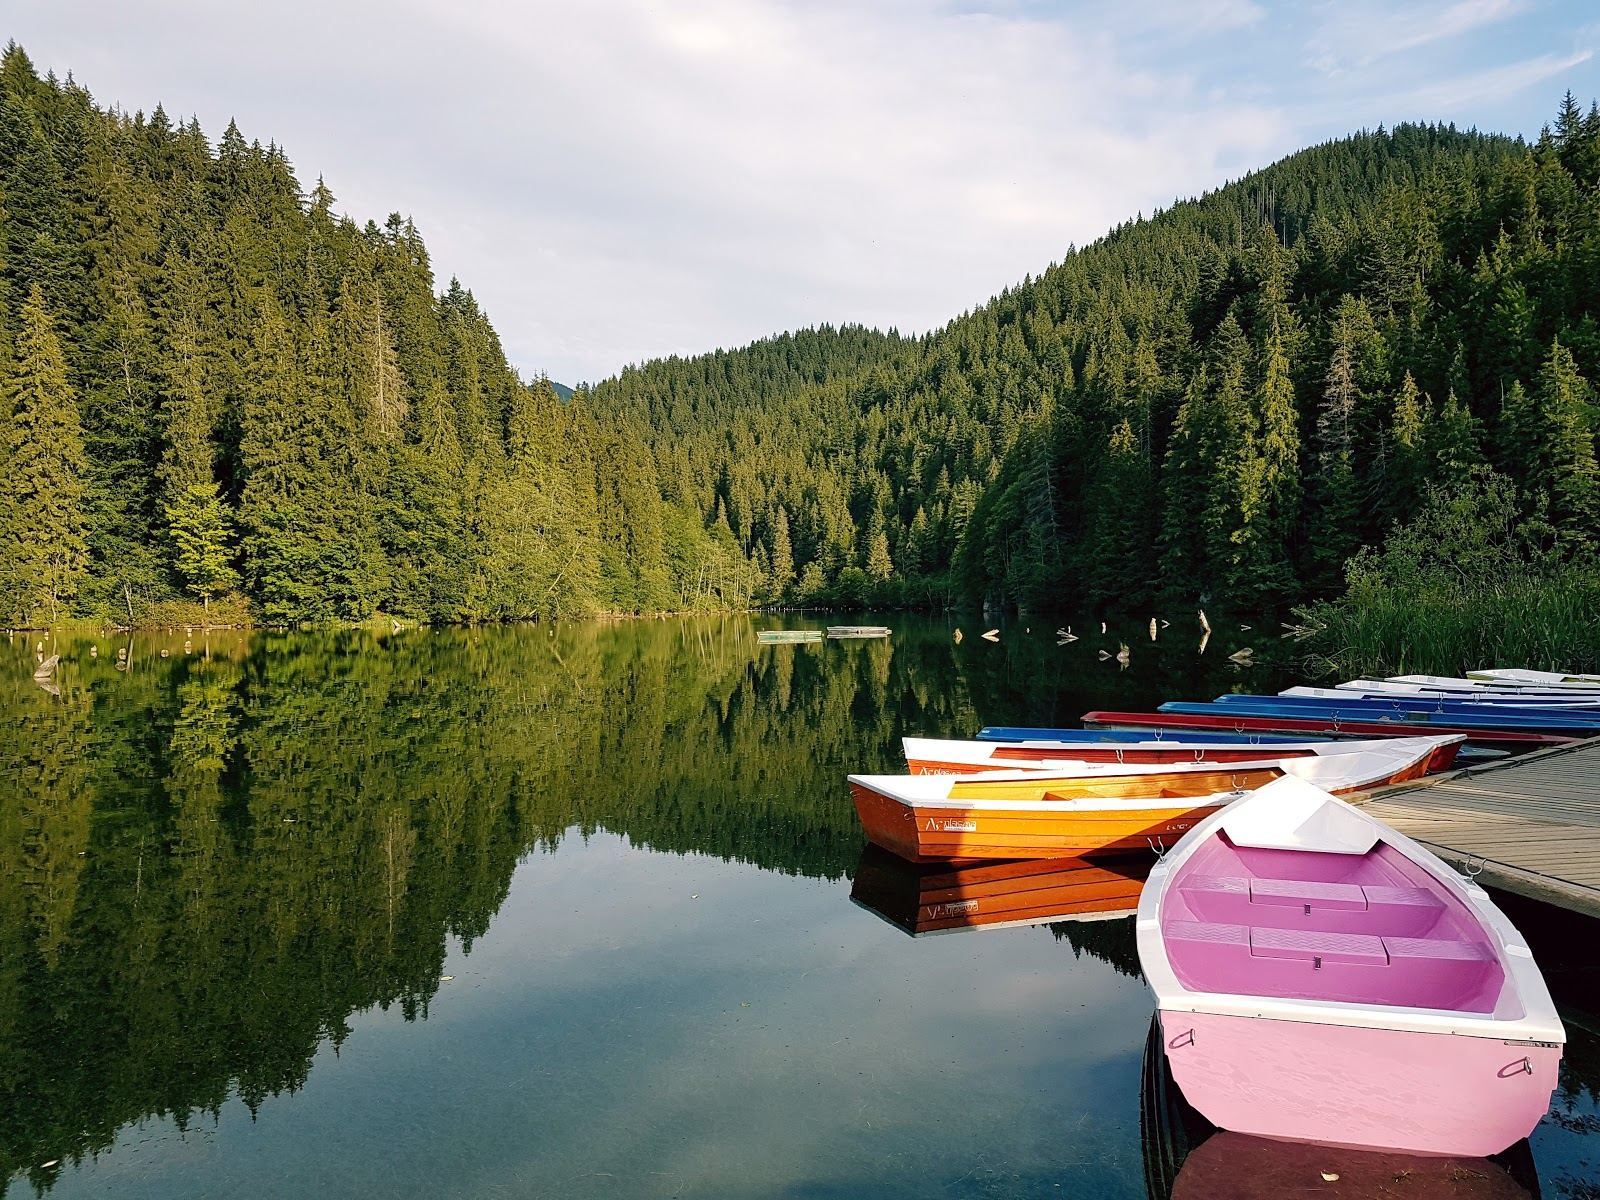 Colorful canoes on lake in forest